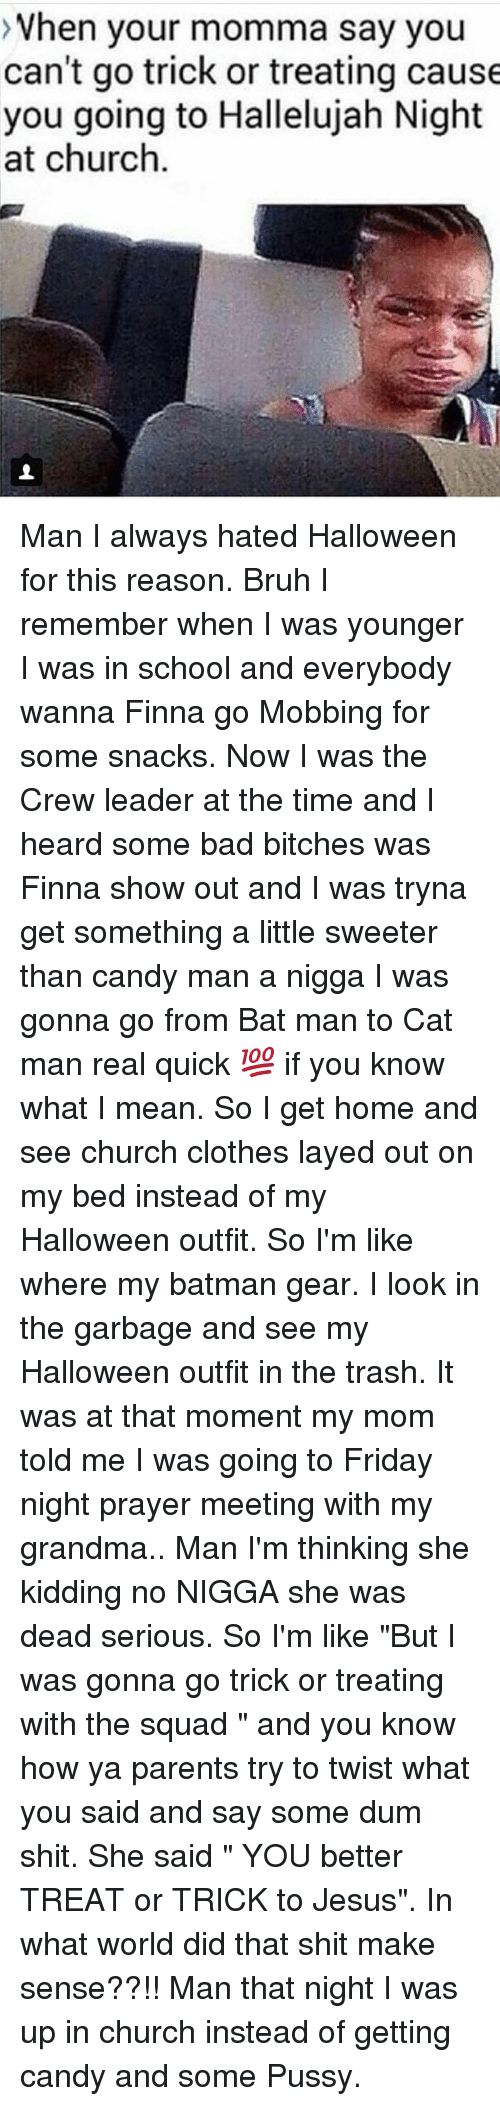 """Youre Momma: >Vhen your momma say you  can't go trick or treating cause  you going to Hallelujah Night  at churclh Man I always hated Halloween for this reason. Bruh I remember when I was younger I was in school and everybody wanna Finna go Mobbing for some snacks. Now I was the Crew leader at the time and I heard some bad bitches was Finna show out and I was tryna get something a little sweeter than candy man a nigga I was gonna go from Bat man to Cat man real quick 💯 if you know what I mean. So I get home and see church clothes layed out on my bed instead of my Halloween outfit. So I'm like where my batman gear. I look in the garbage and see my Halloween outfit in the trash. It was at that moment my mom told me I was going to Friday night prayer meeting with my grandma.. Man I'm thinking she kidding no NIGGA she was dead serious. So I'm like """"But I was gonna go trick or treating with the squad """" and you know how ya parents try to twist what you said and say some dum shit. She said """" YOU better TREAT or TRICK to Jesus"""". In what world did that shit make sense??!! Man that night I was up in church instead of getting candy and some Pussy."""